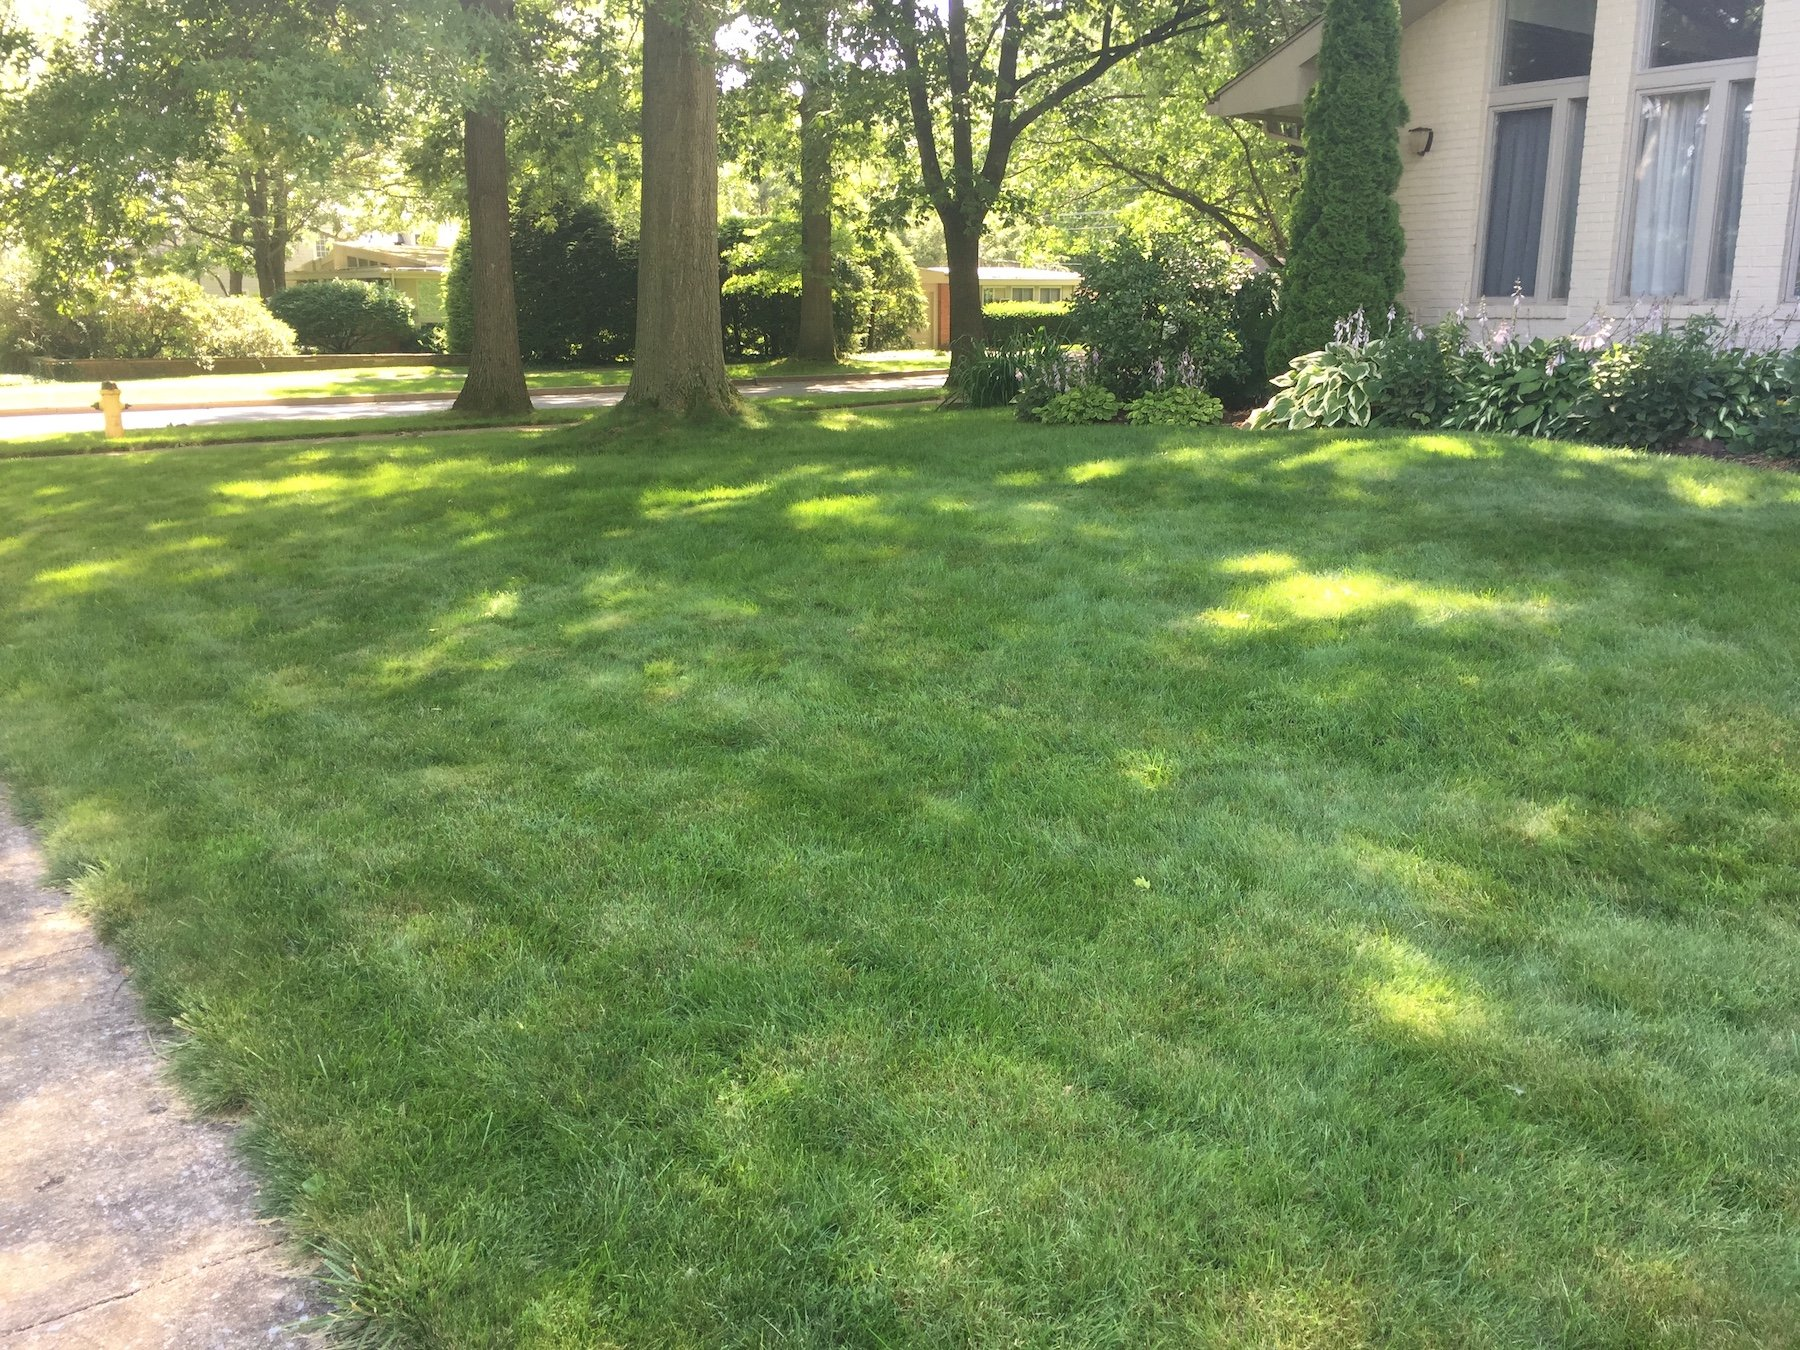 Fine fescue lawn in shade-penn state